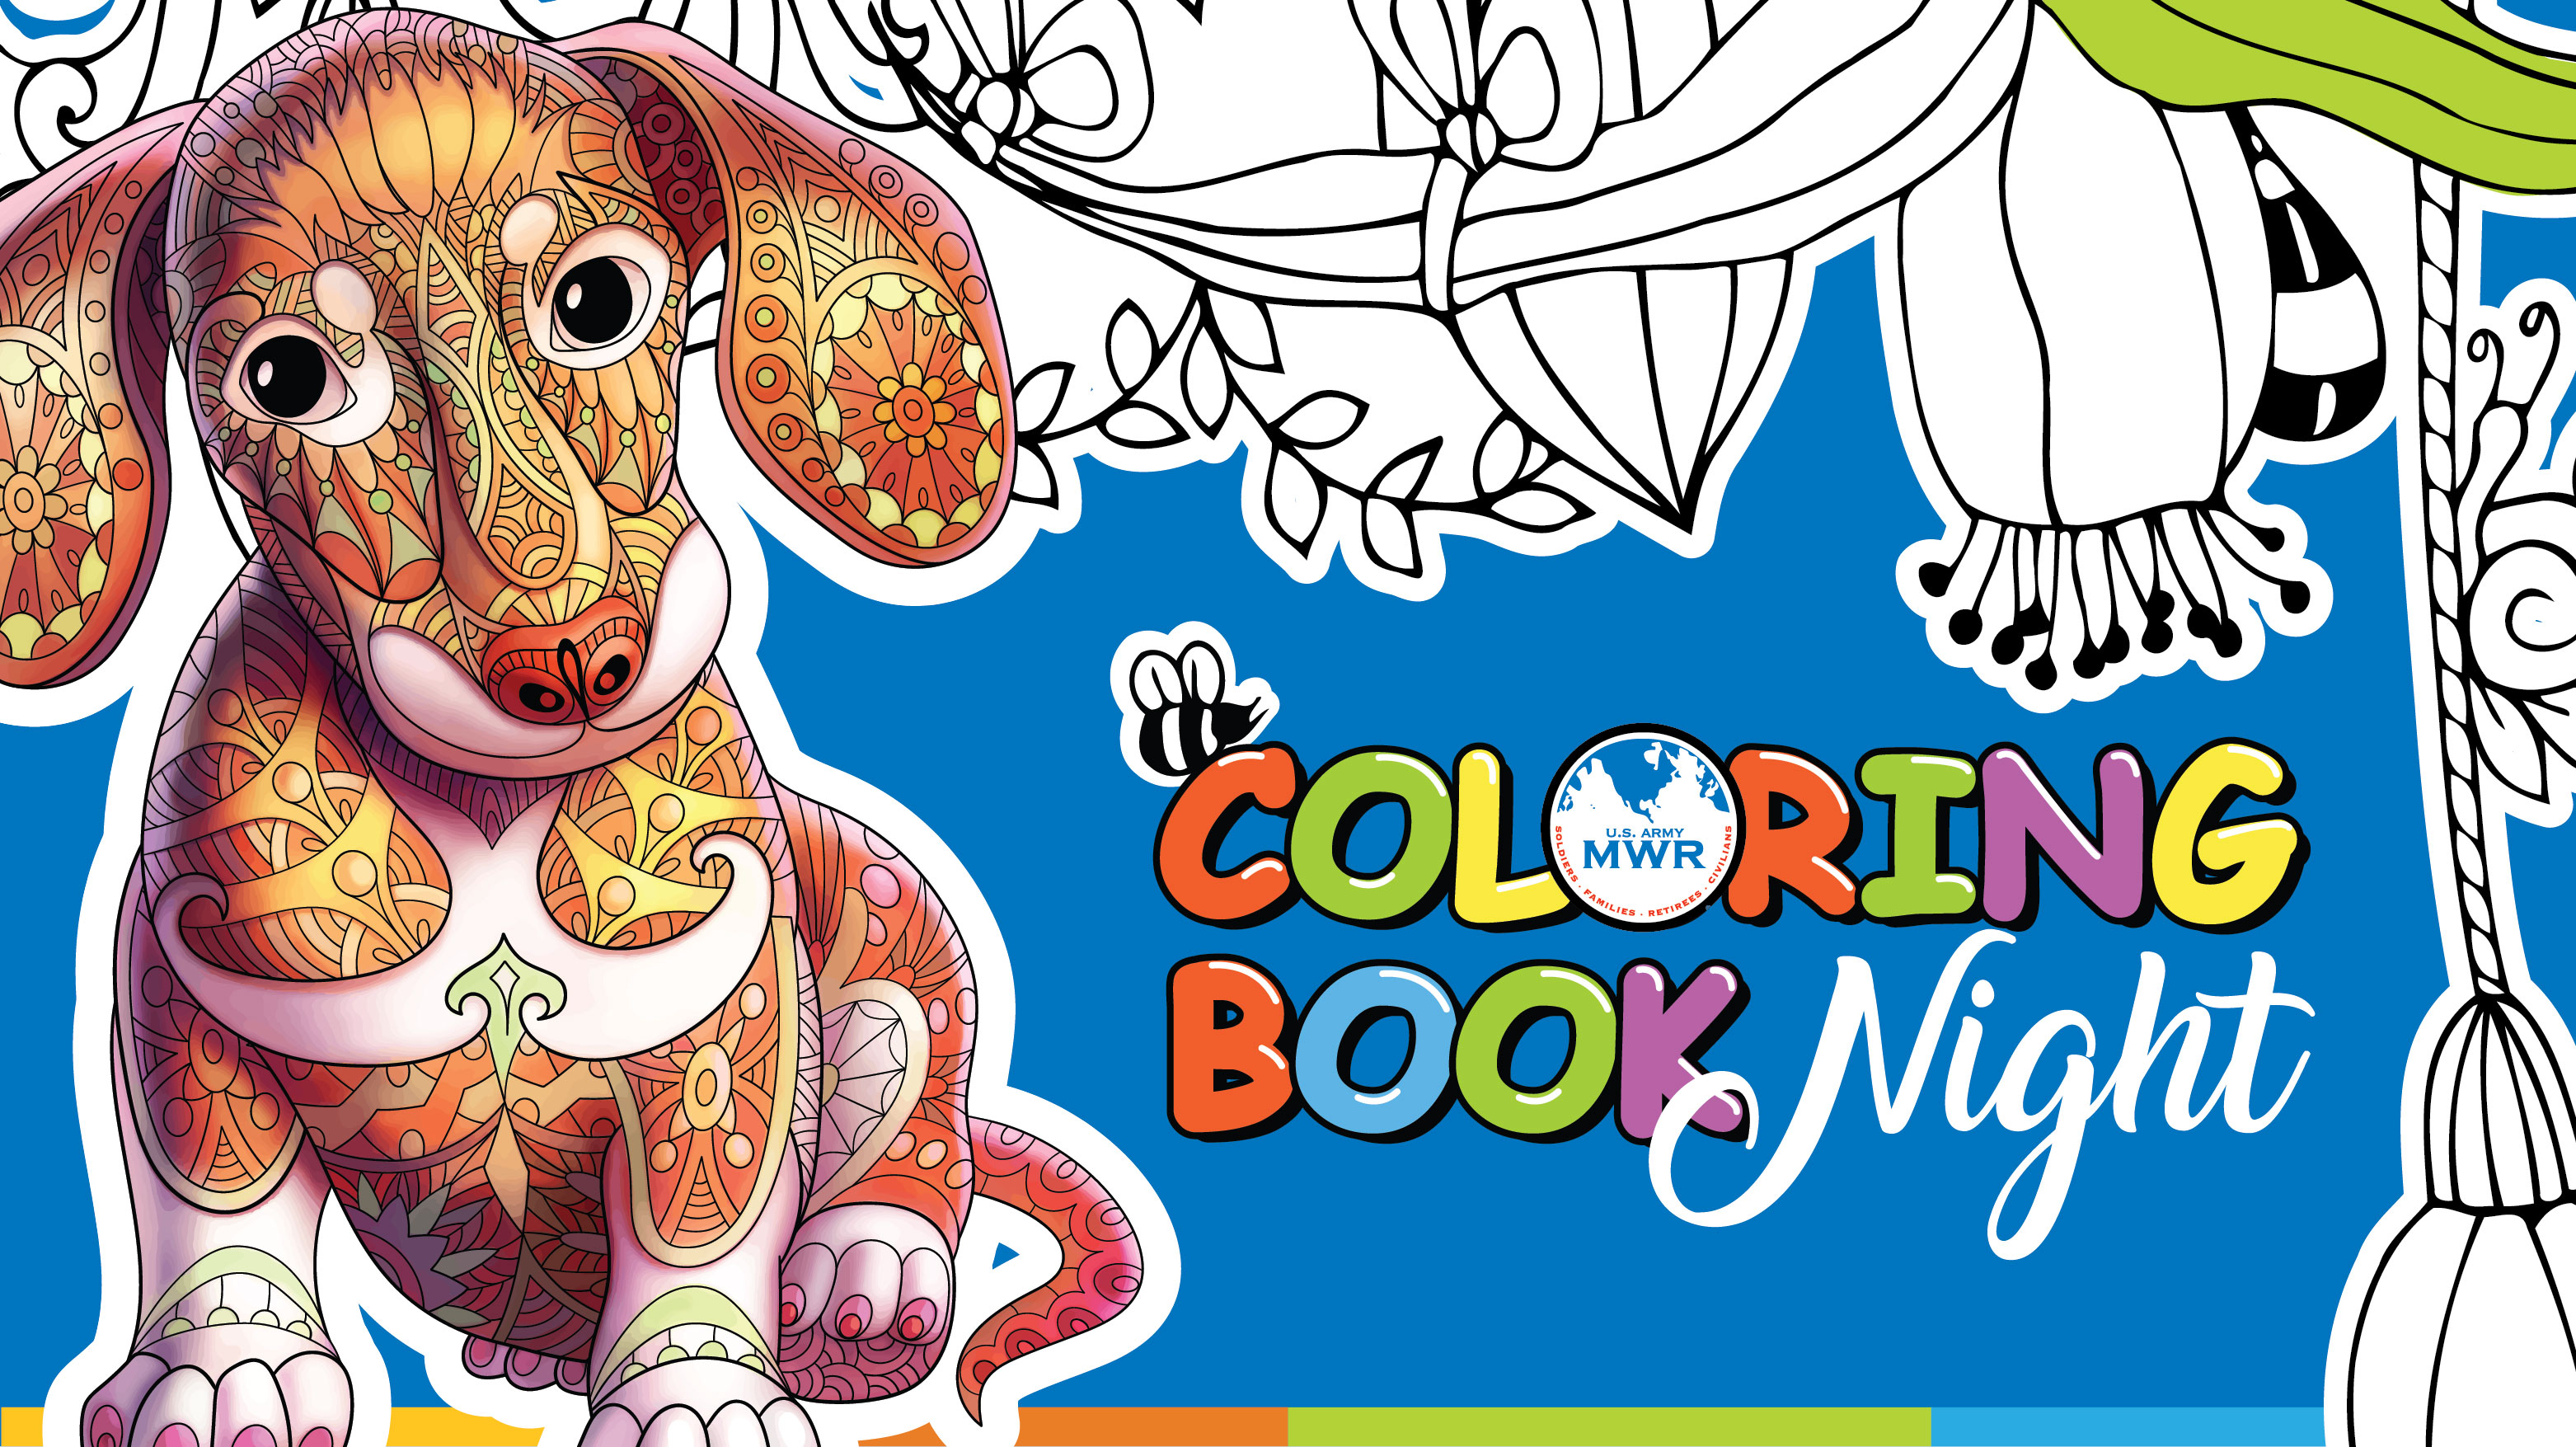 Coloring Book Night